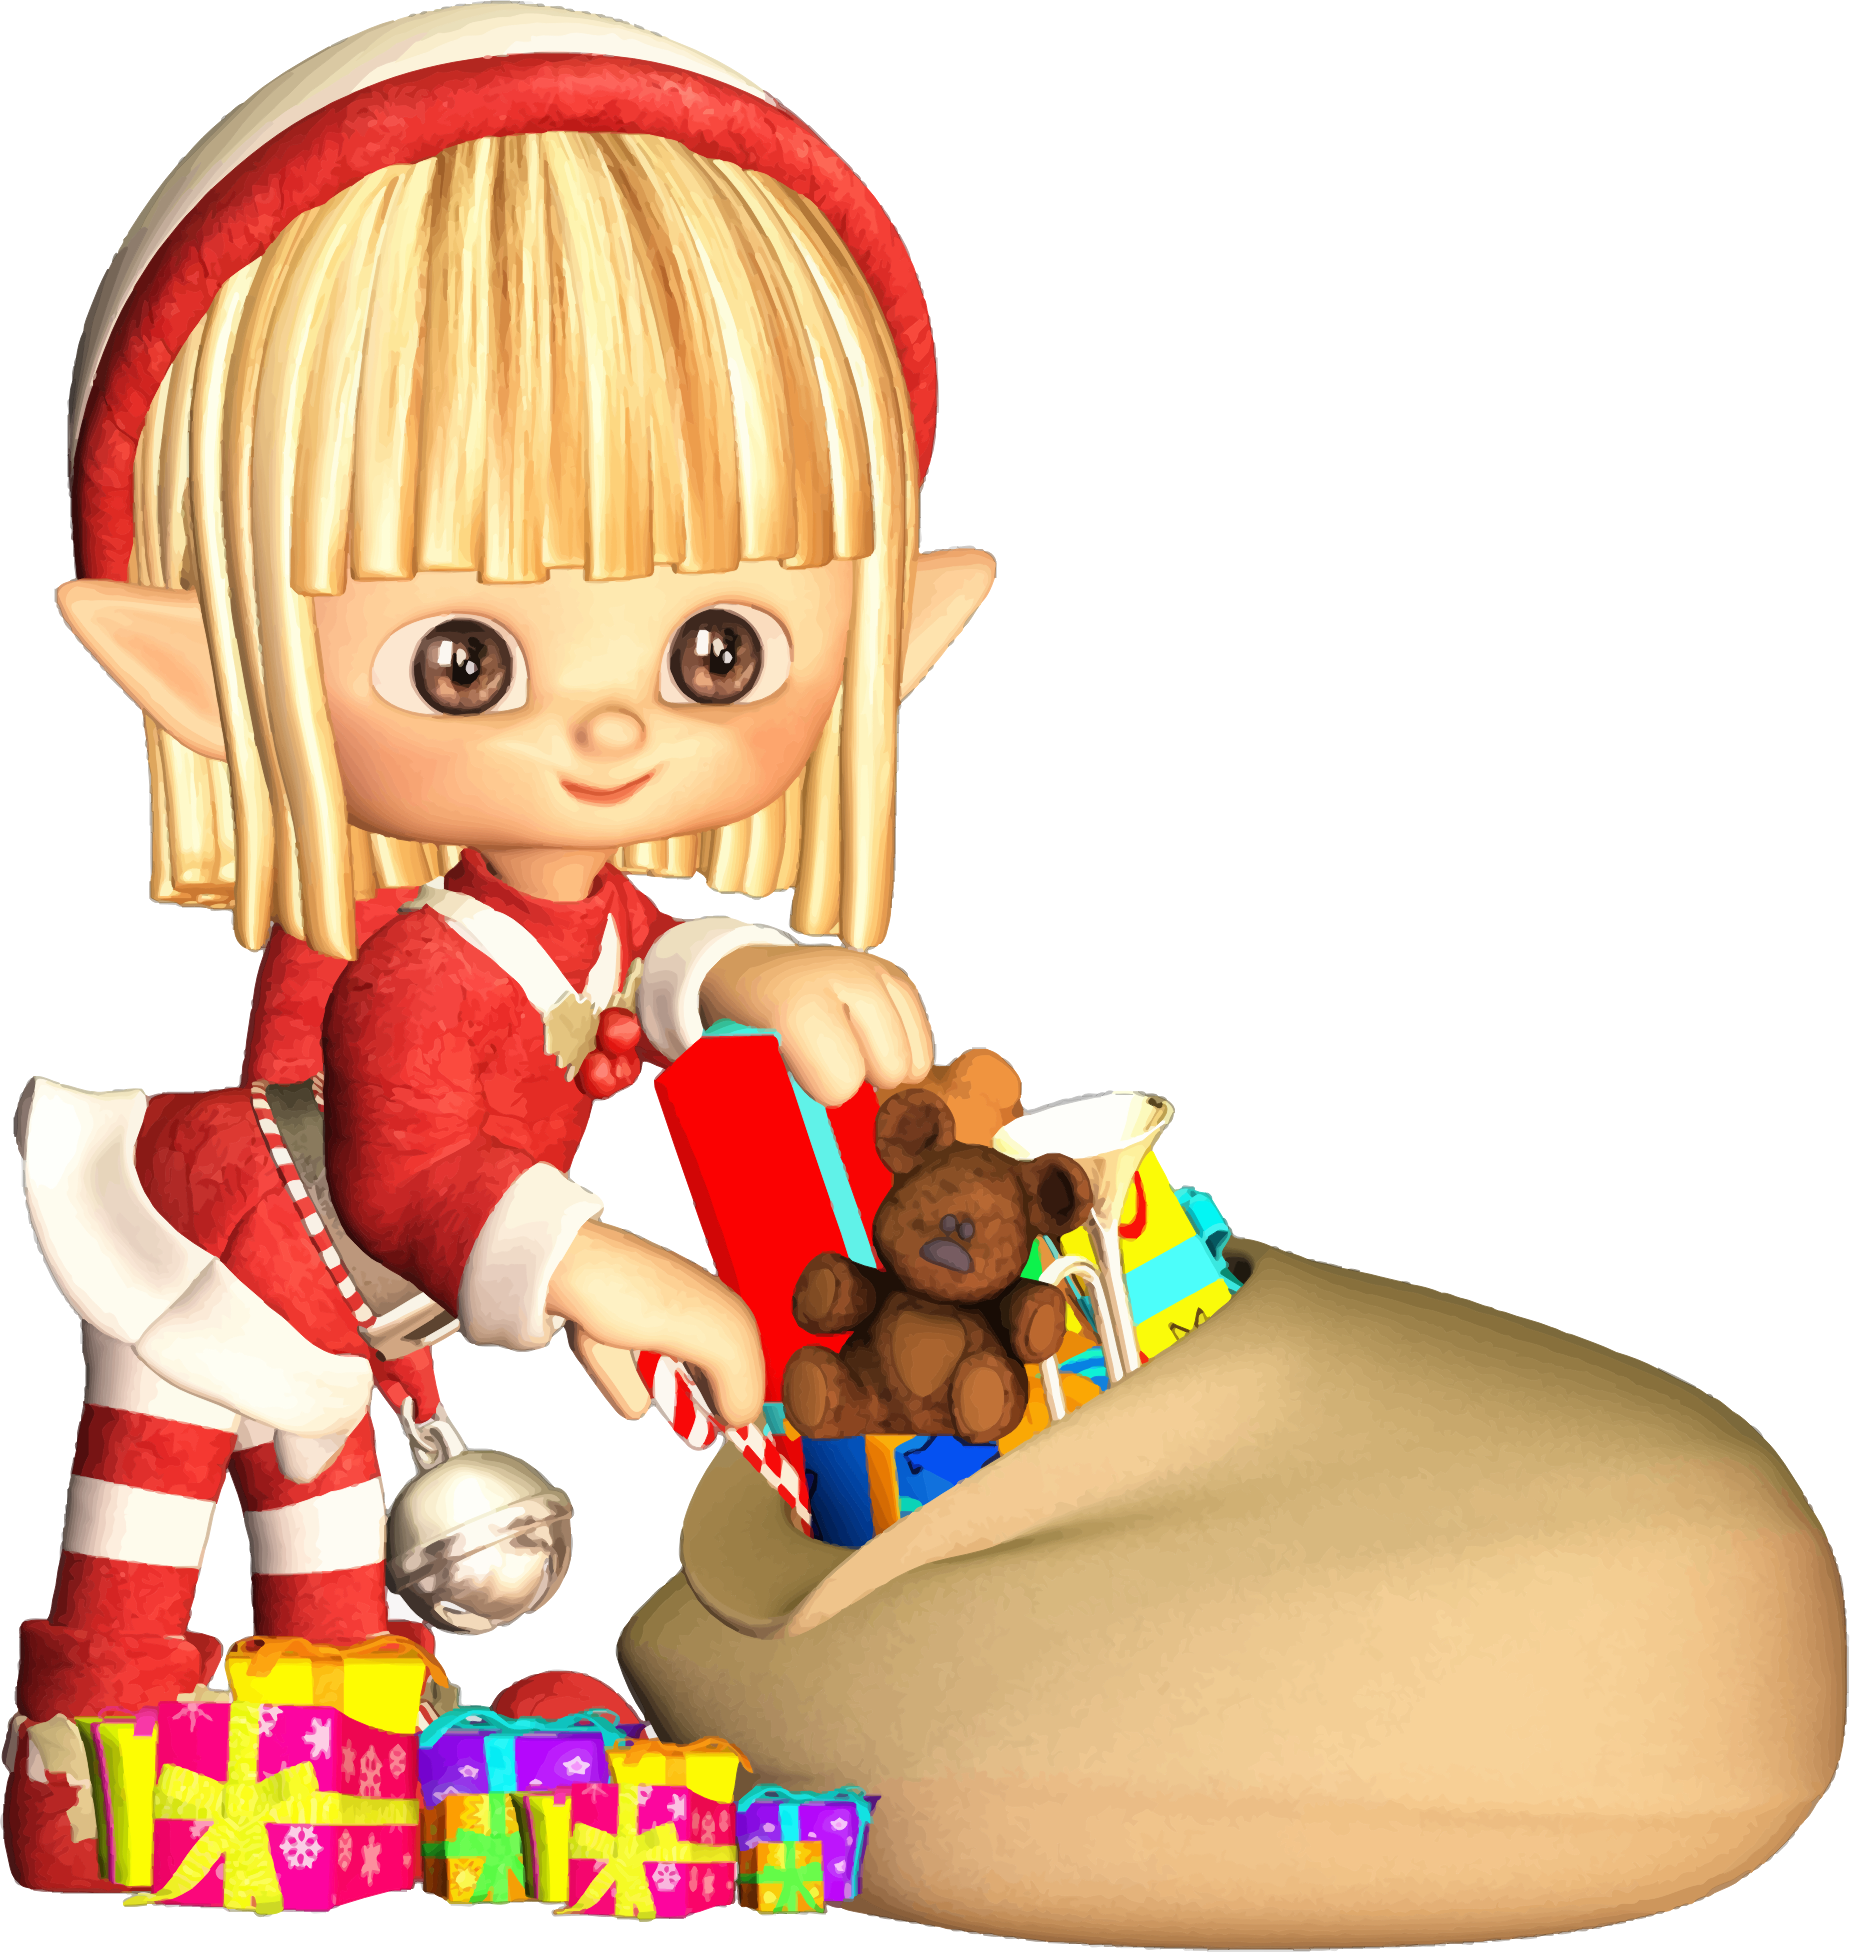 Elf clipart outline Gifts With Clipart Christmas Cartoon